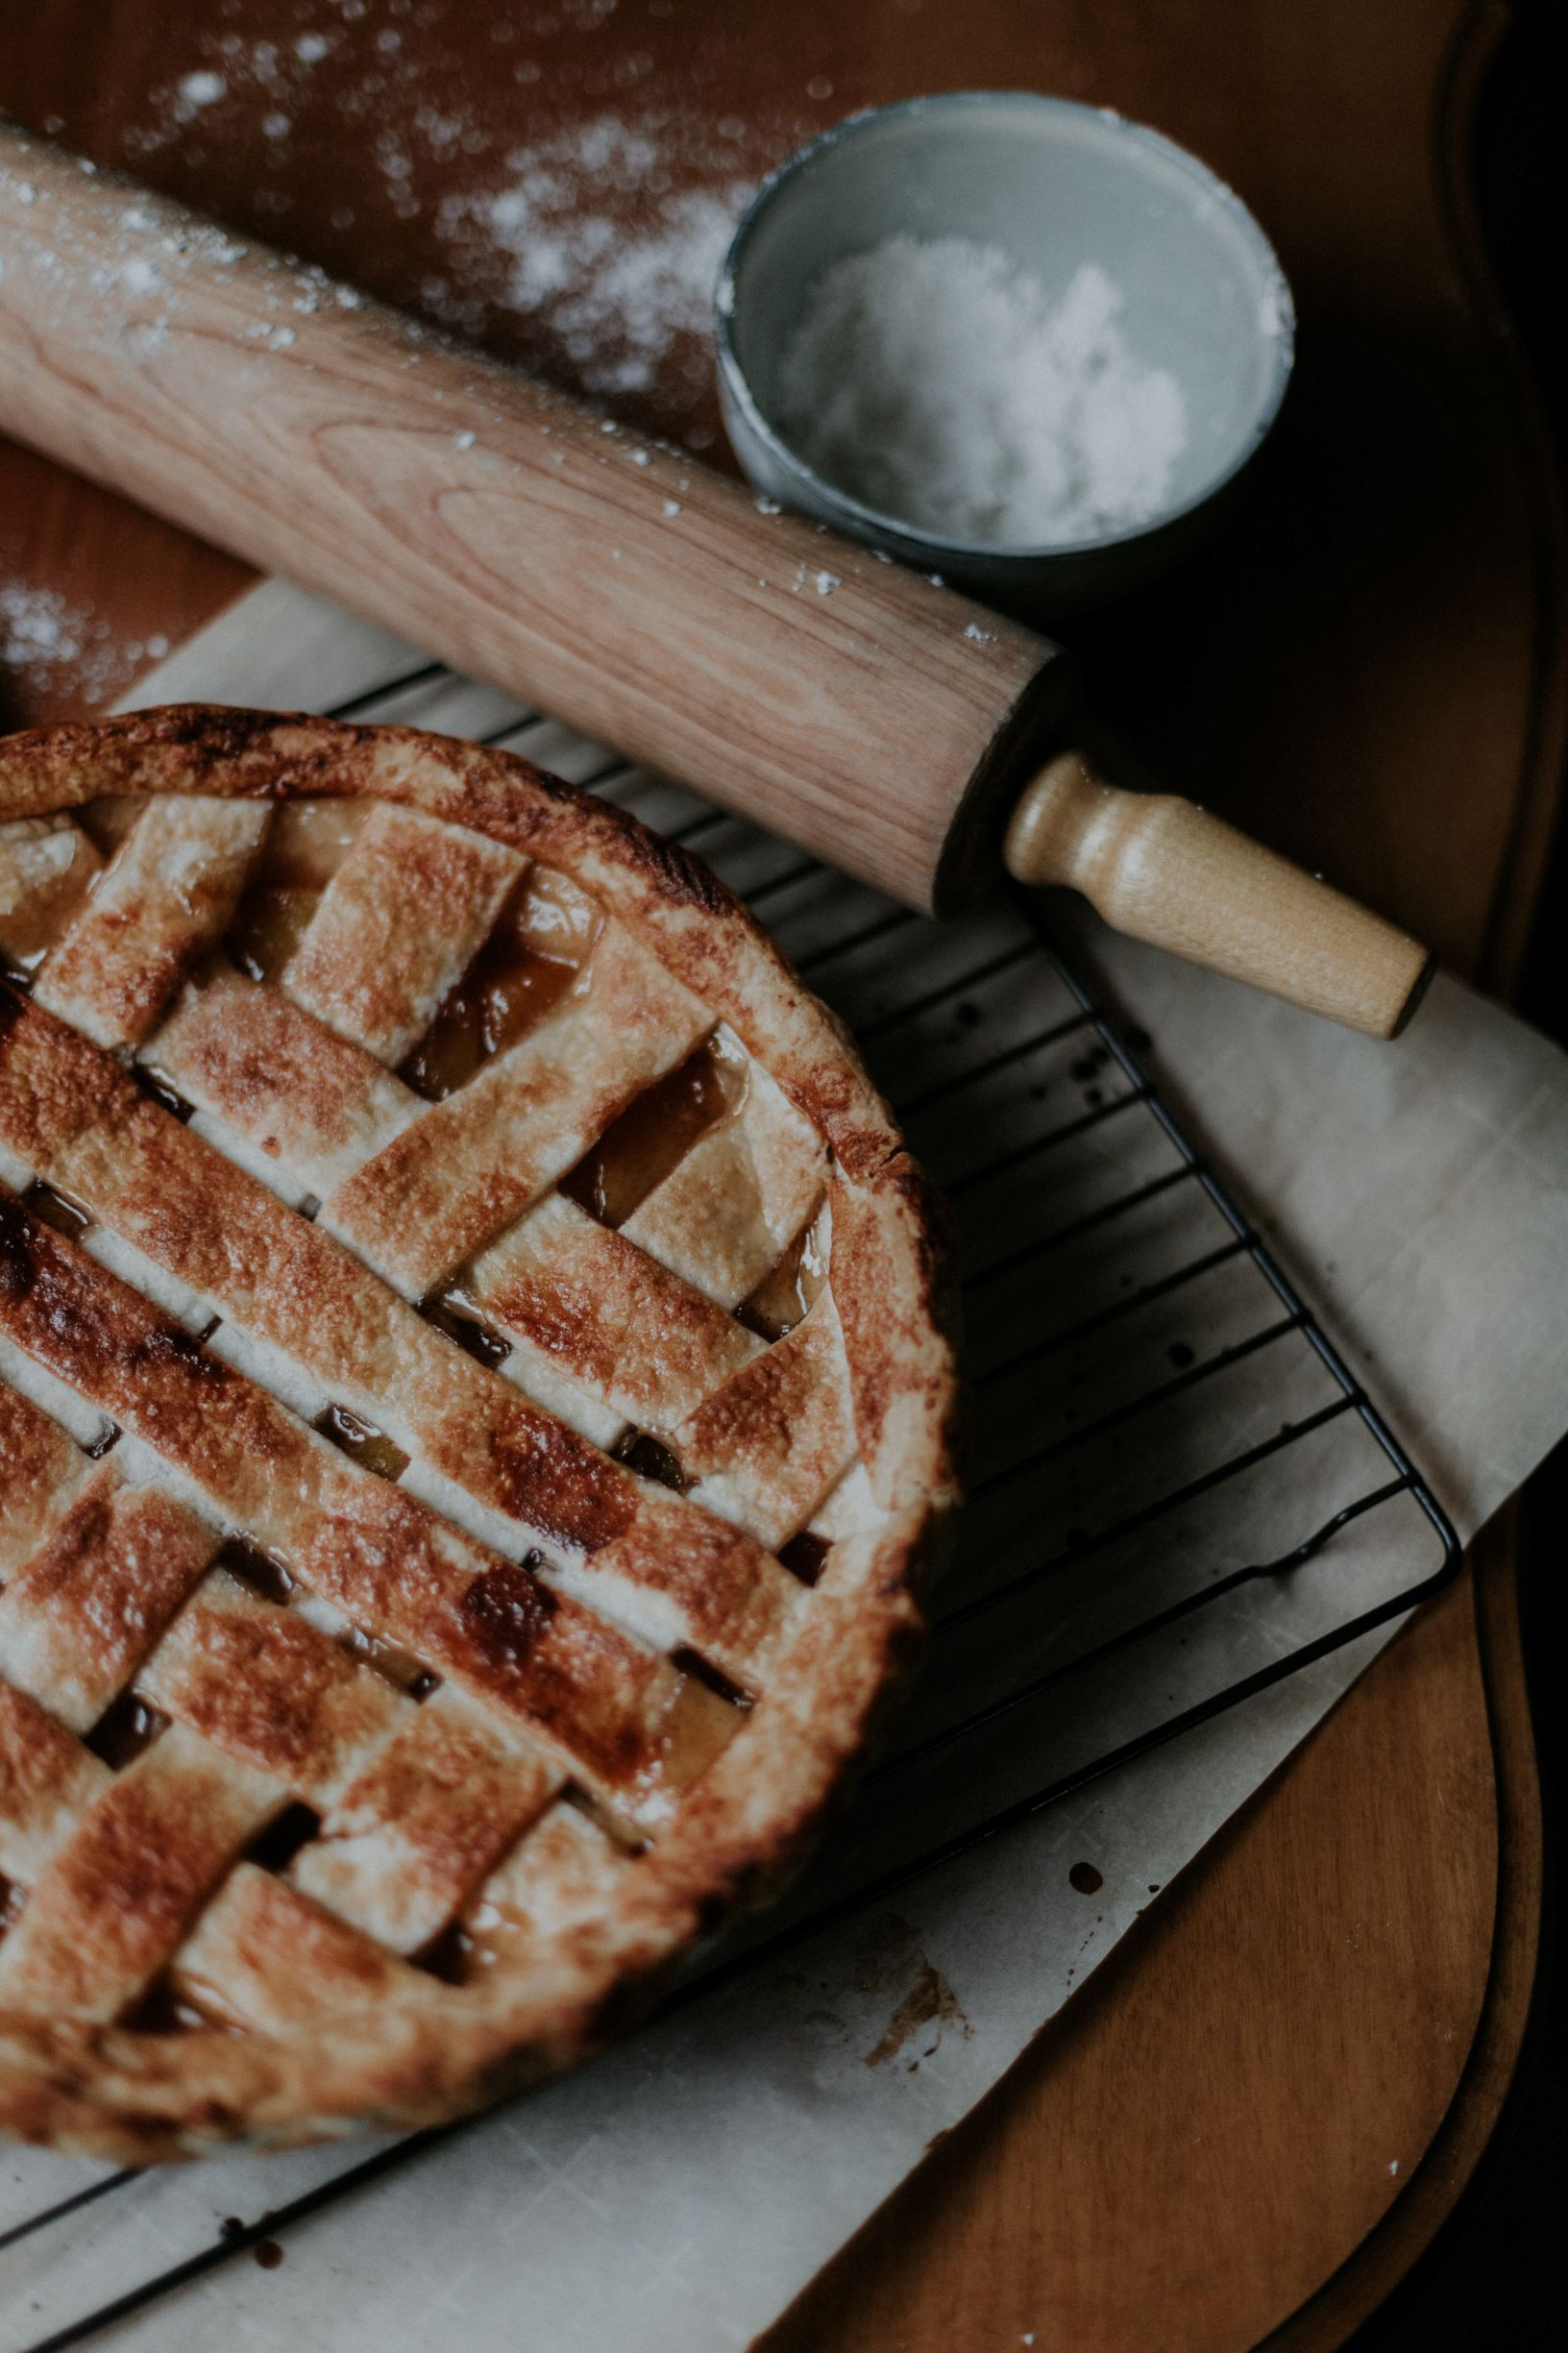 Photo of homemade apple pie with roller pin and flour